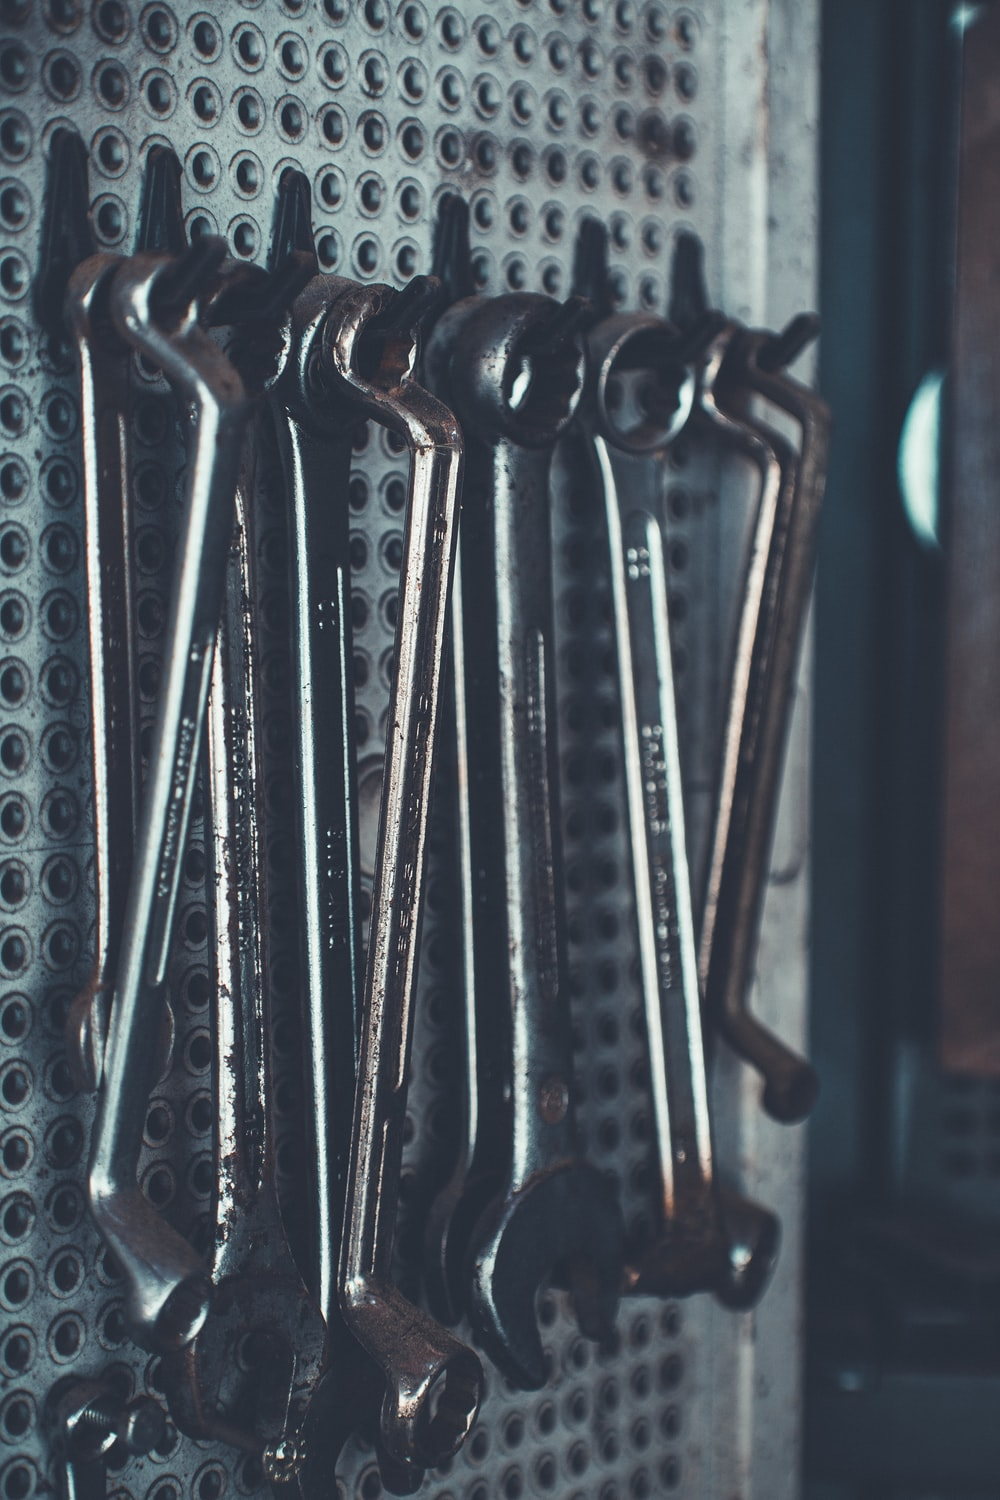 close-up photo of gray combination wrench set